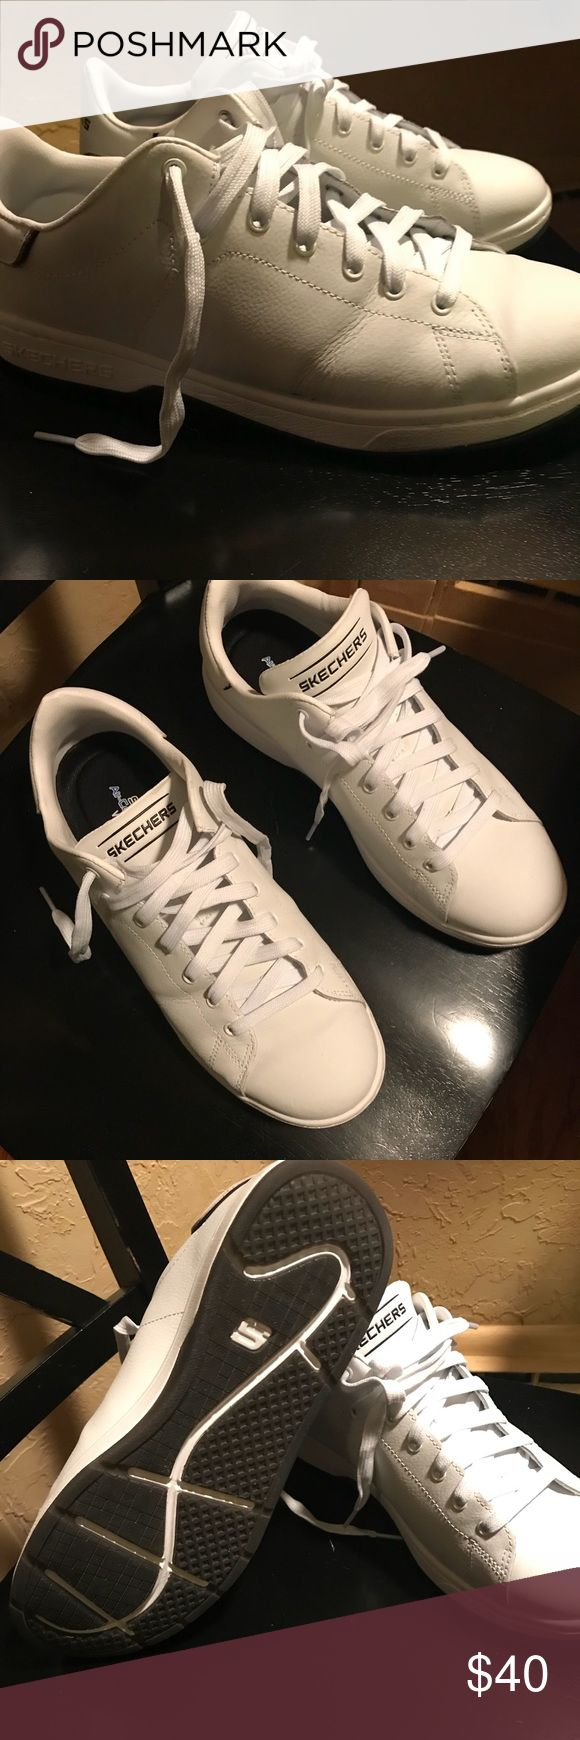 Men's 10 Sketcher tennis shoes. Men's sketcher tennis shoes only worn one time in size 10 sketchers Shoes Sneakers